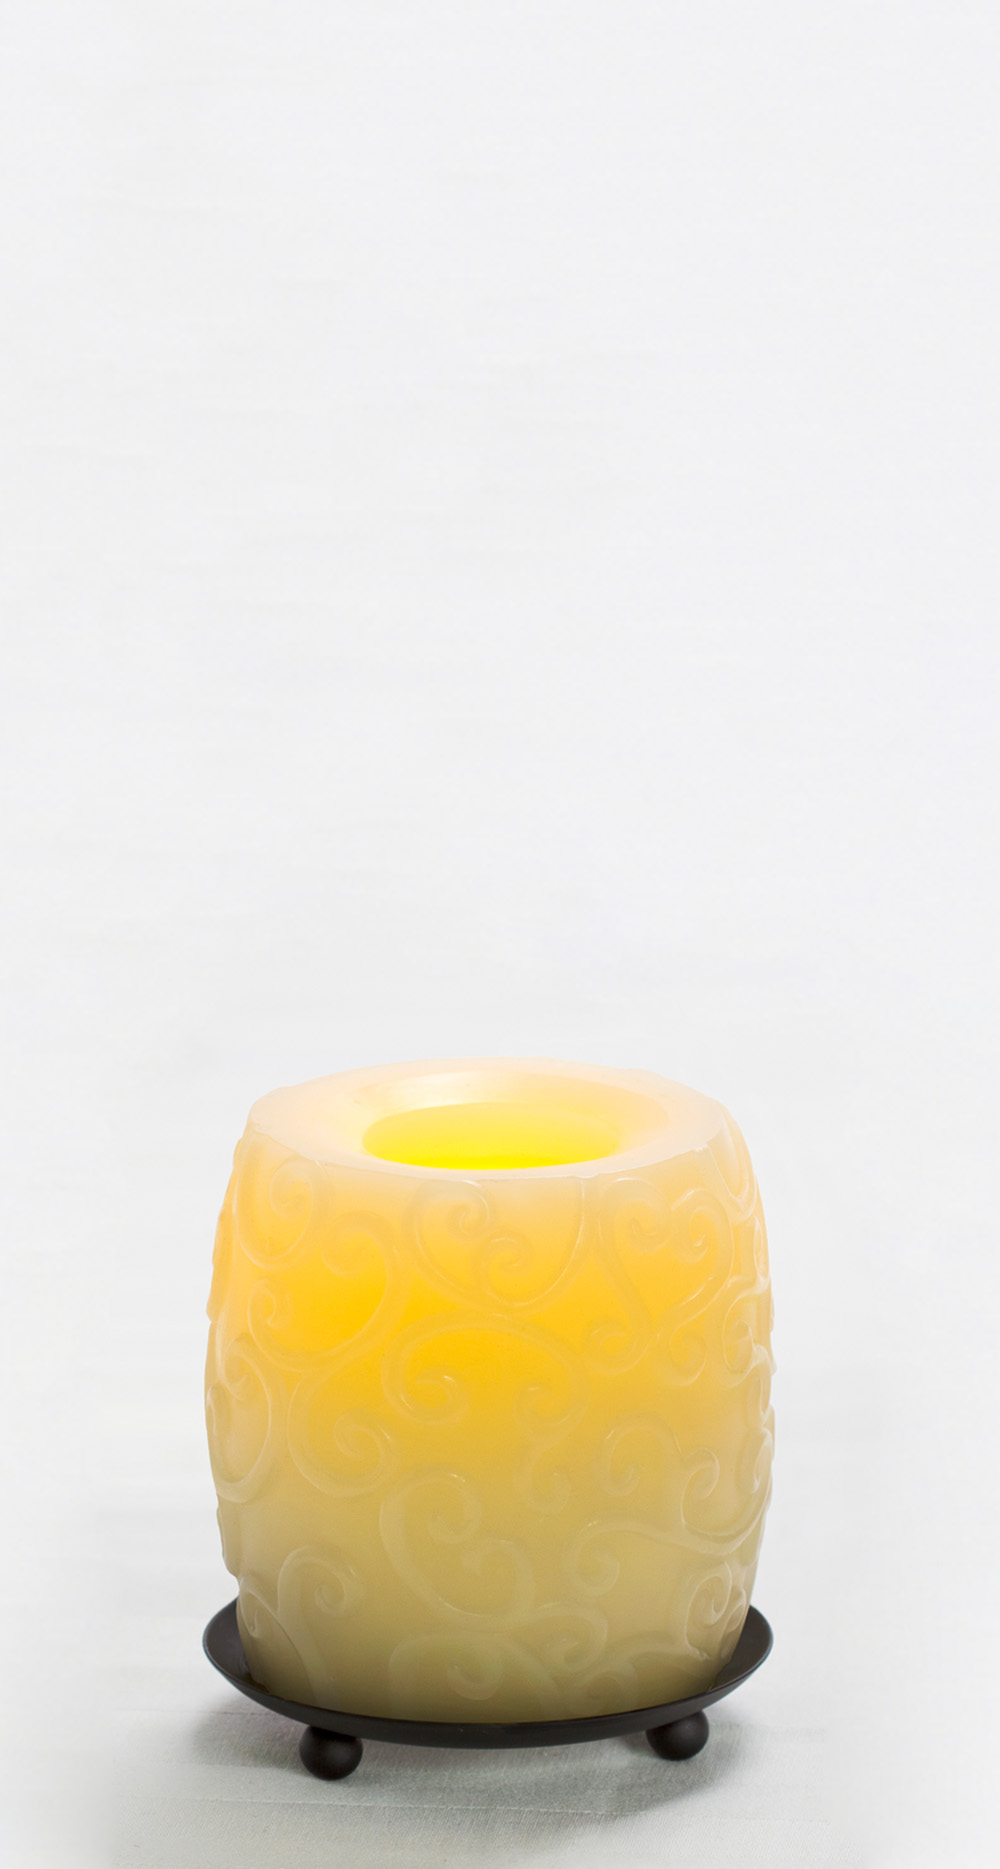 4 Inch Flameless Striped Hurricane Candle with Timer - Cream with Vanilla Scent